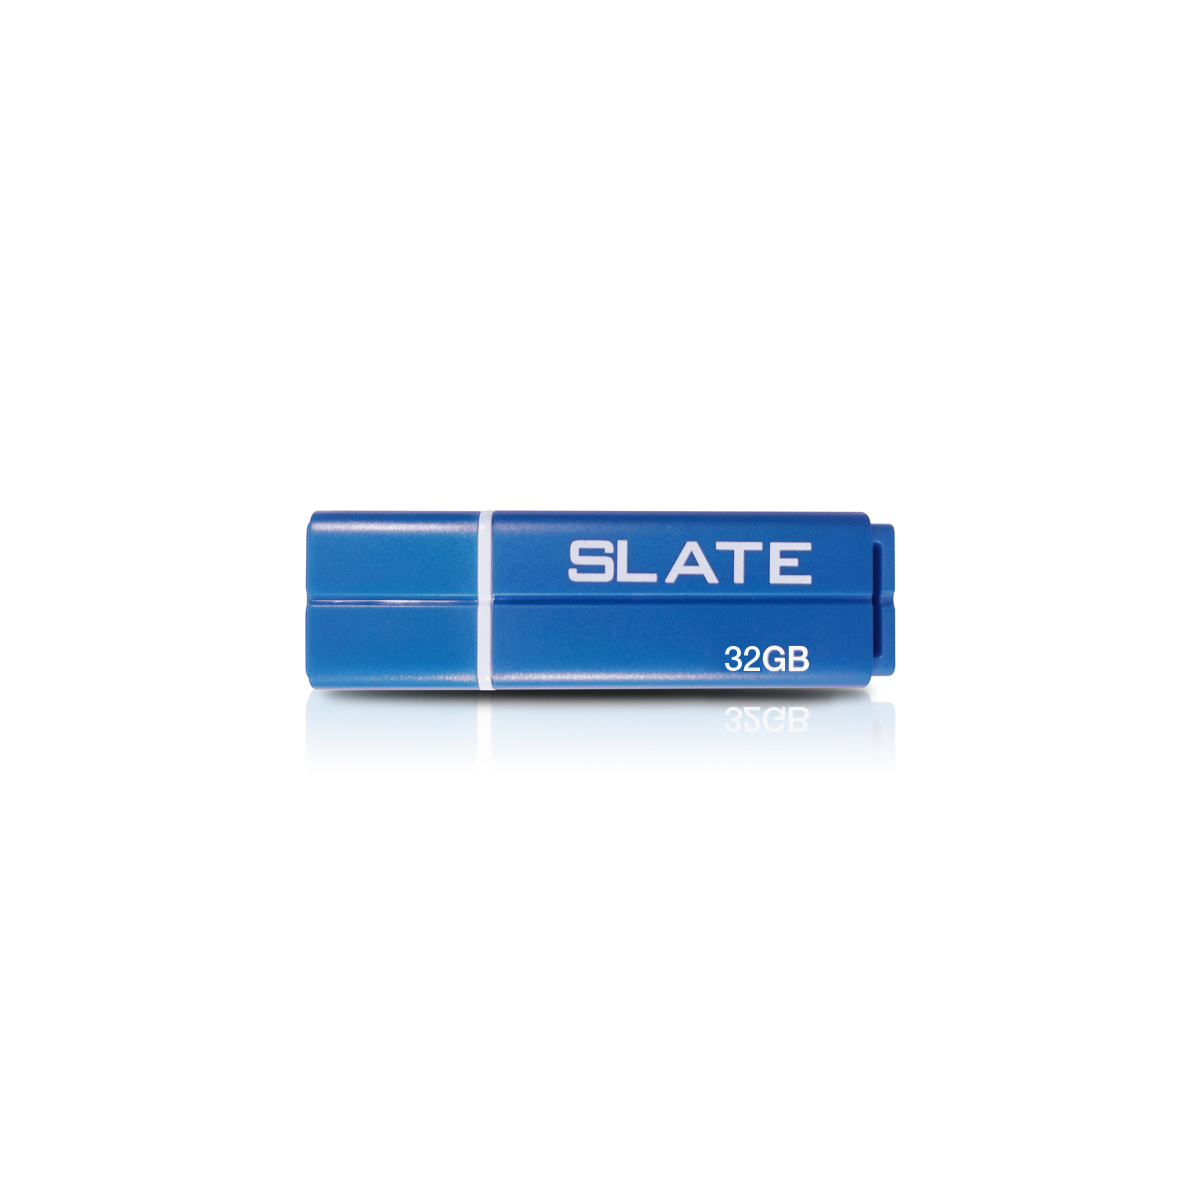 32GB Patriot Slate USB 3.0 modrý